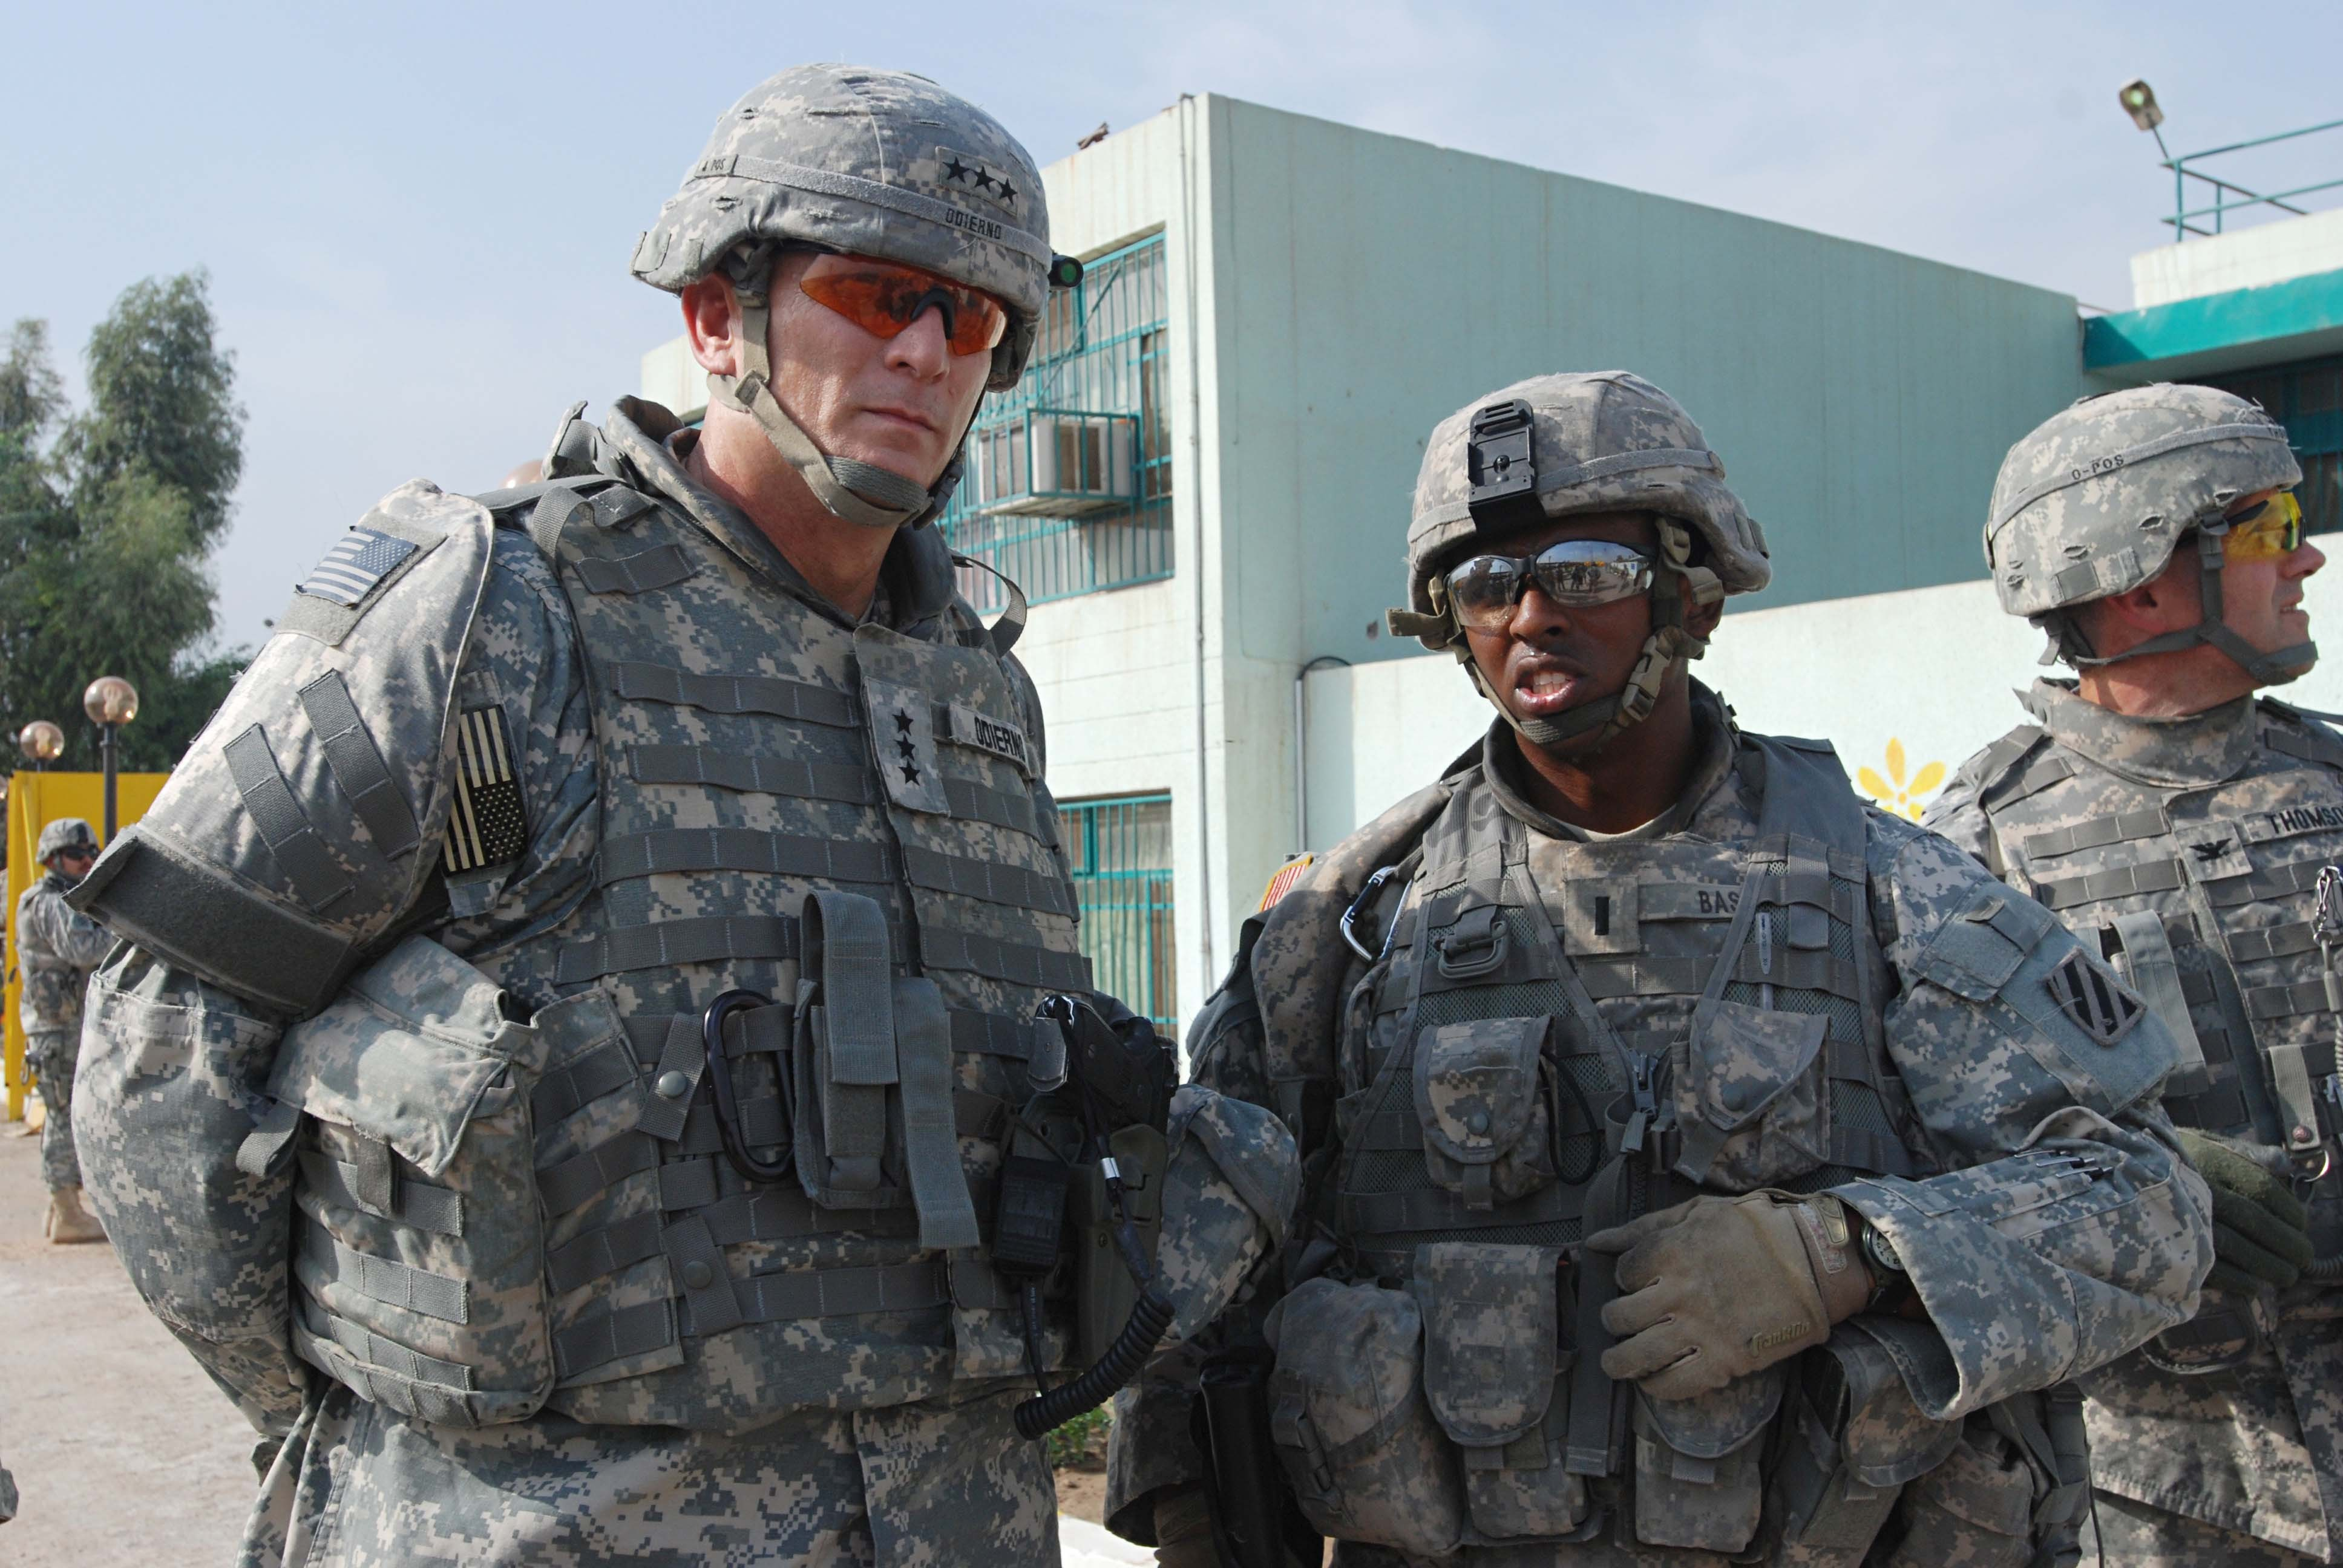 Lieutenant Helps to Renovate Orphanage for Iraqi Girls DVIDS62253.jpg English: Washington, D.C. native 1st Lt. William Bass (right), a fire